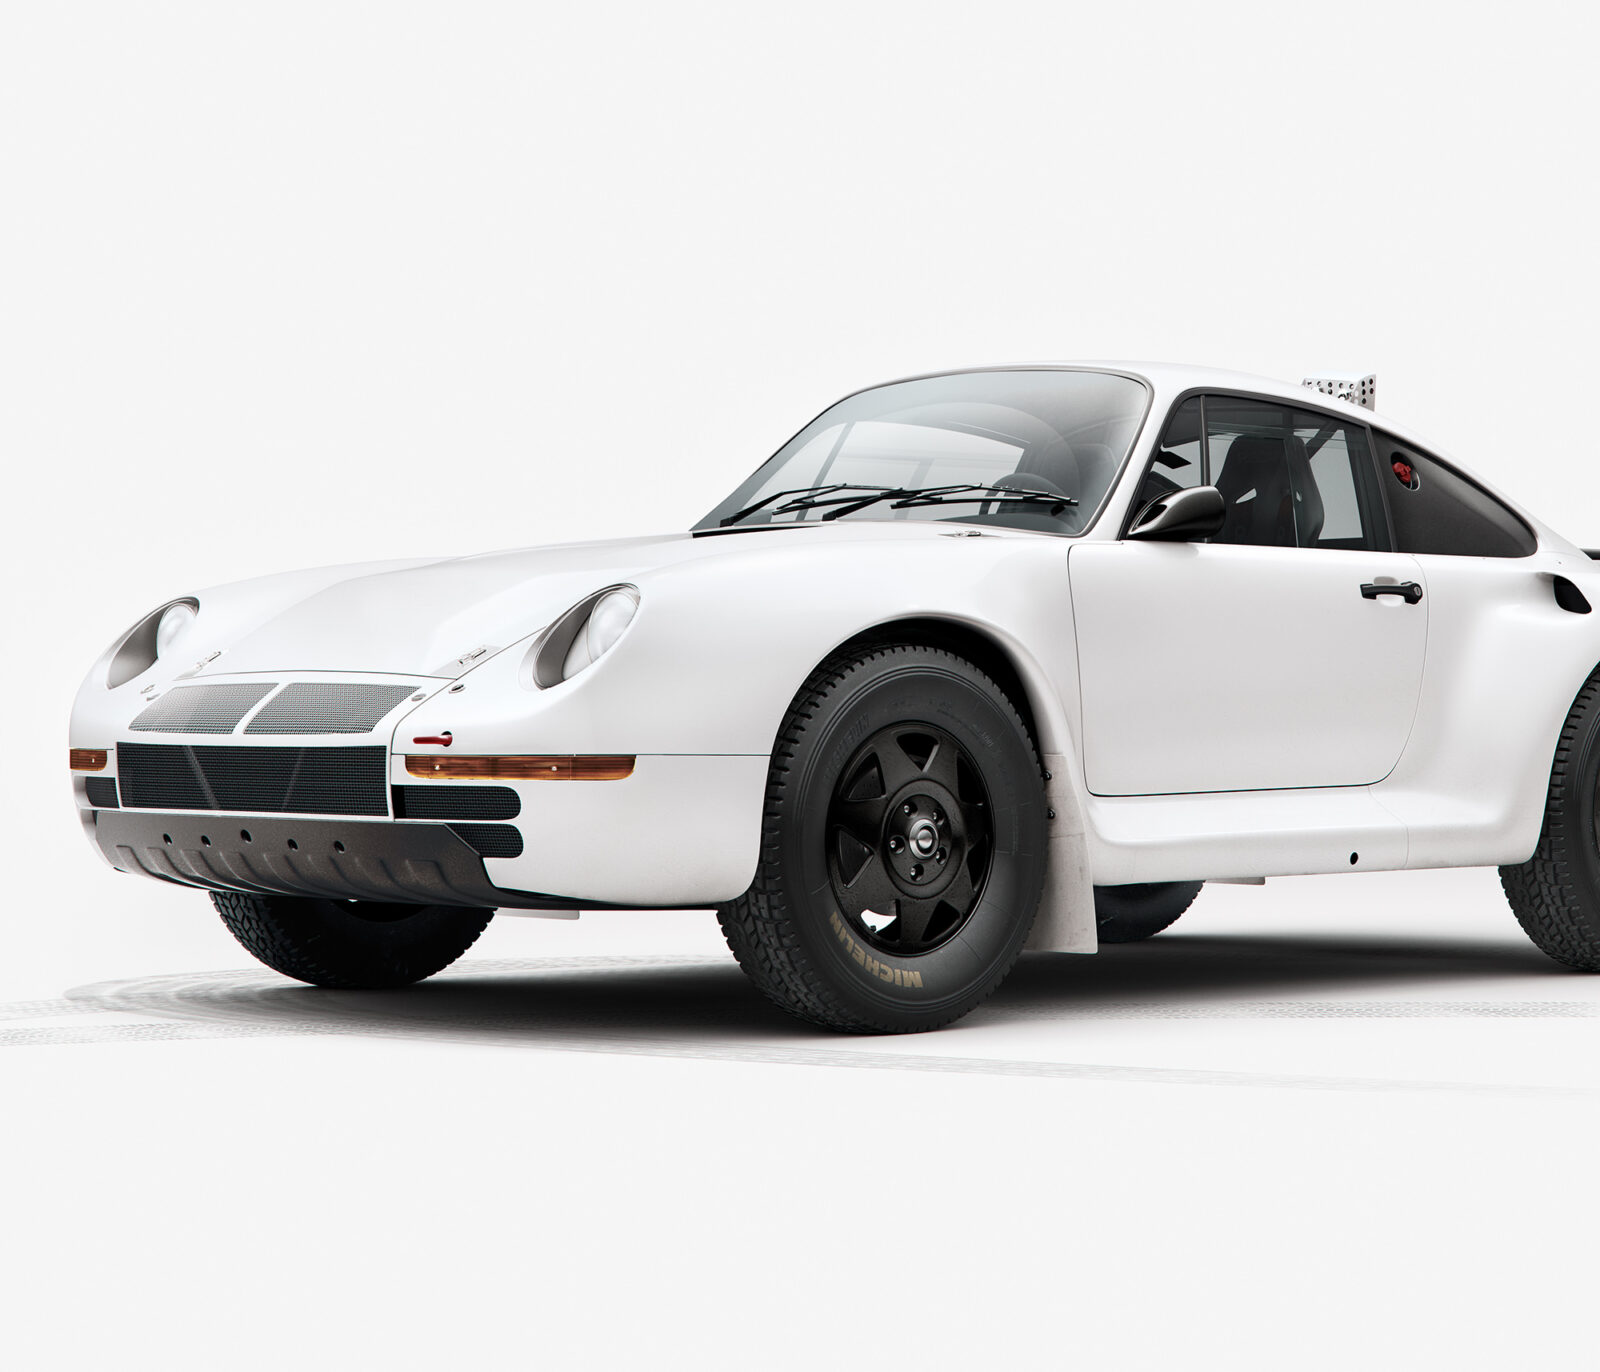 paris dakar rally porsche 959 plain body prints. Black Bedroom Furniture Sets. Home Design Ideas